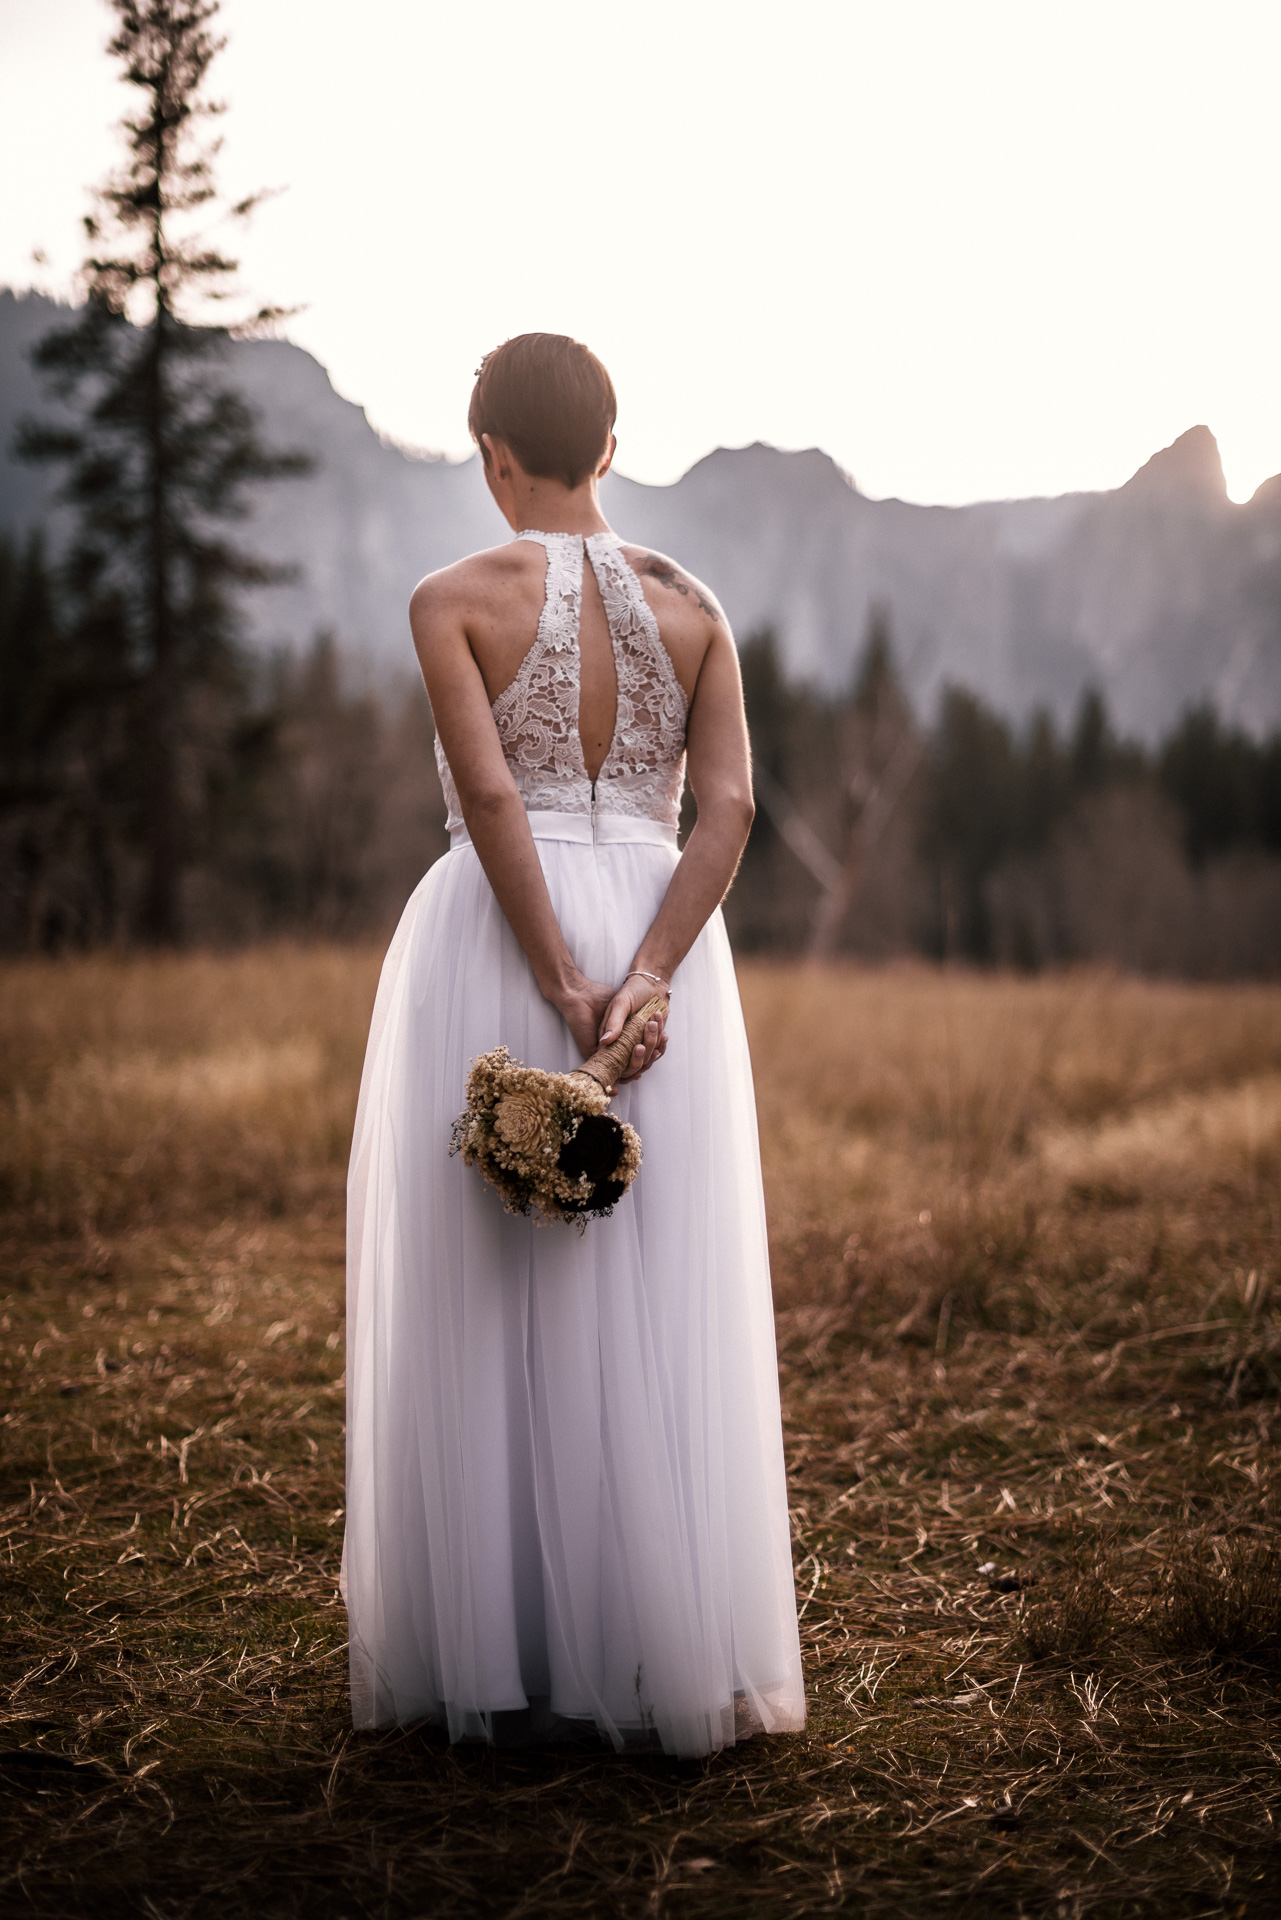 Bride poses with bouquet showing the detials of her wedding dress in yosemite national park